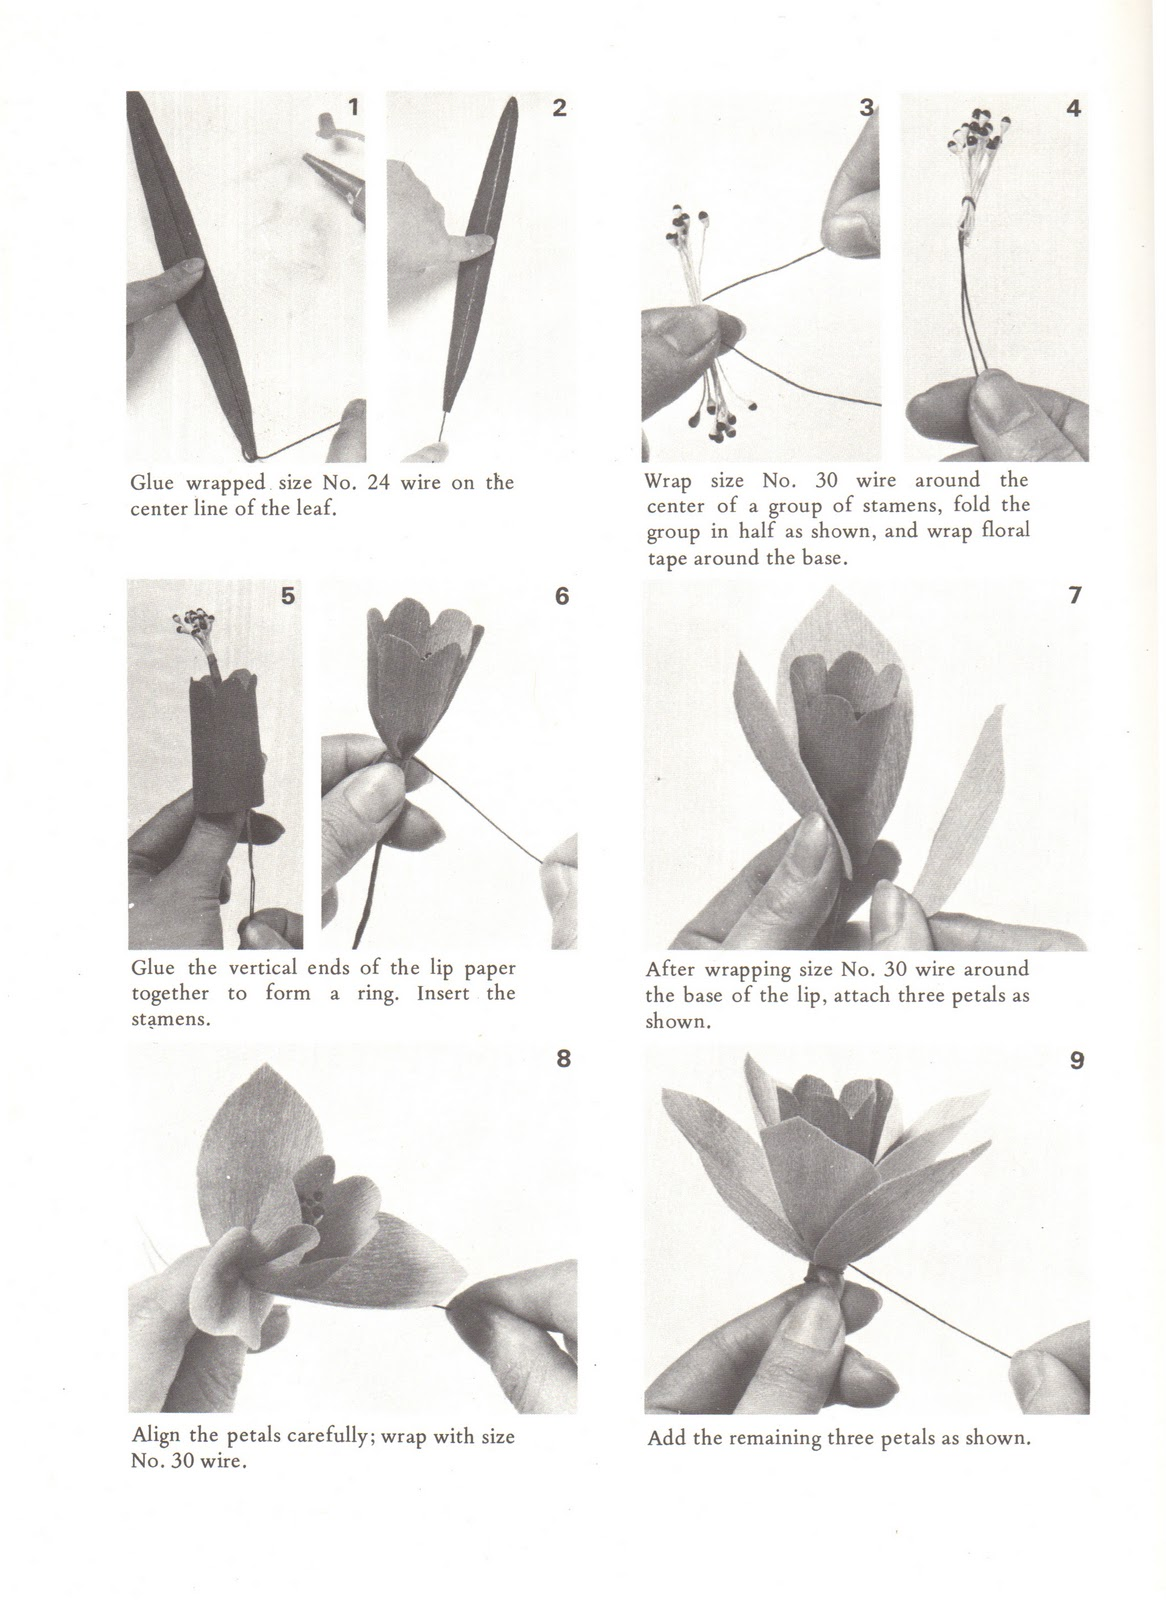 Bitter betty blogs tutorial make your own spring paper daffodils as you might recall my narcissus had a bulb on it that was made by adding a watte cotton pear wrapped in brown crepe paper to the bottom of my flower mightylinksfo